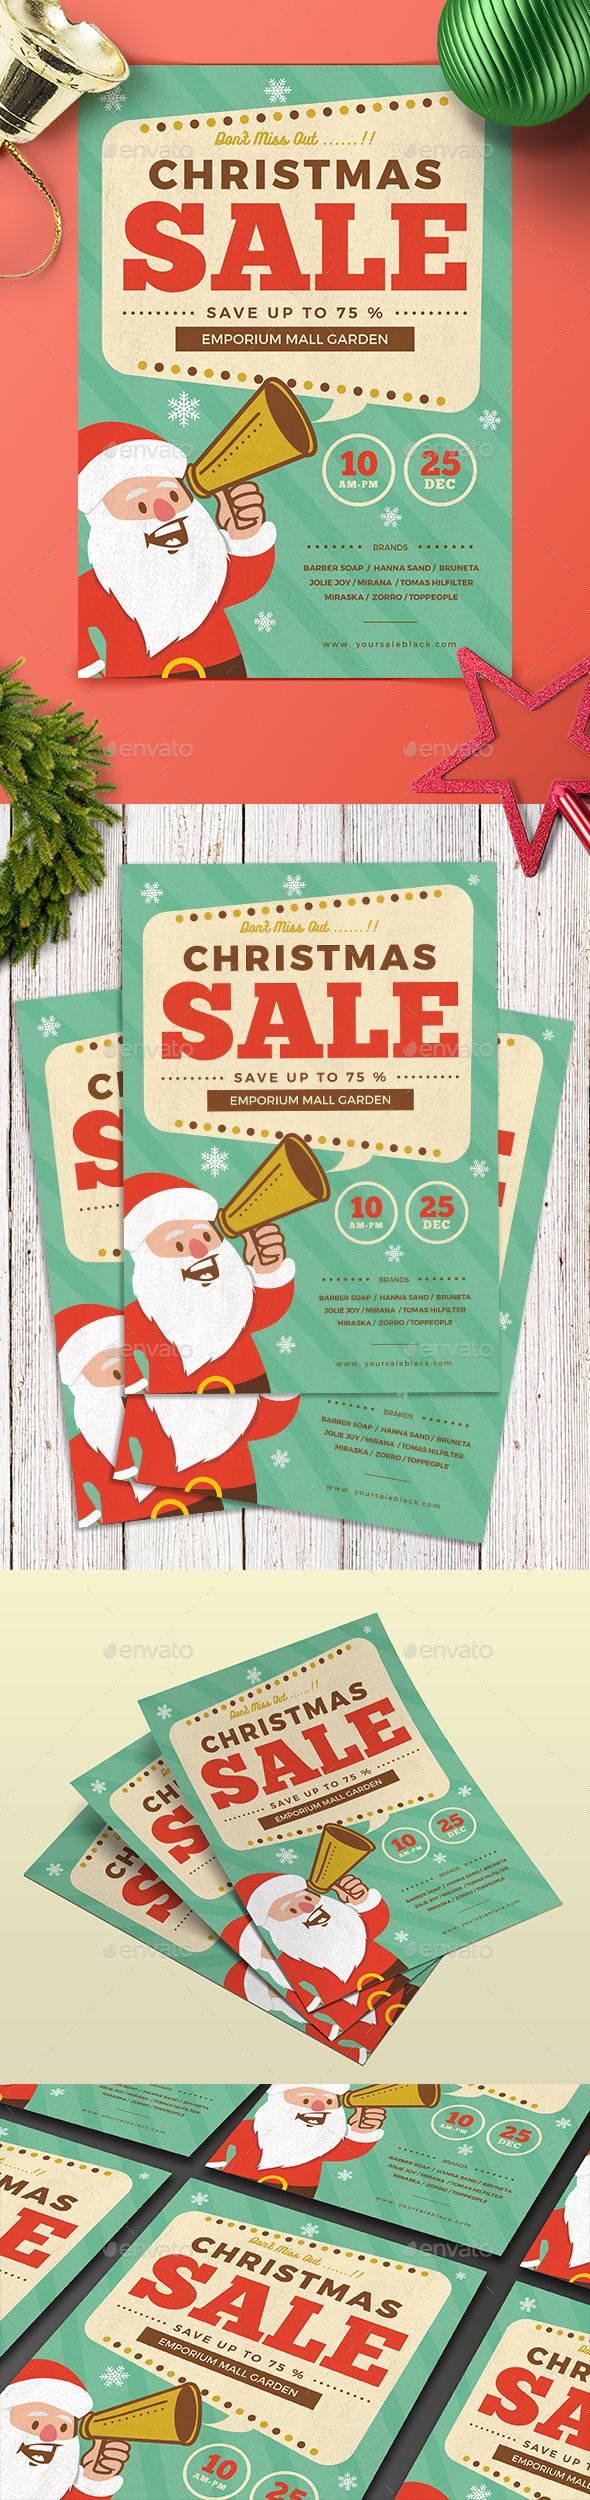 Retro Christmas Sale — Photoshop PSD #flyer template #newyear • Download ➝ https://graphicriver.net/item/retro-christmas-sale/19078167?ref=pxcr